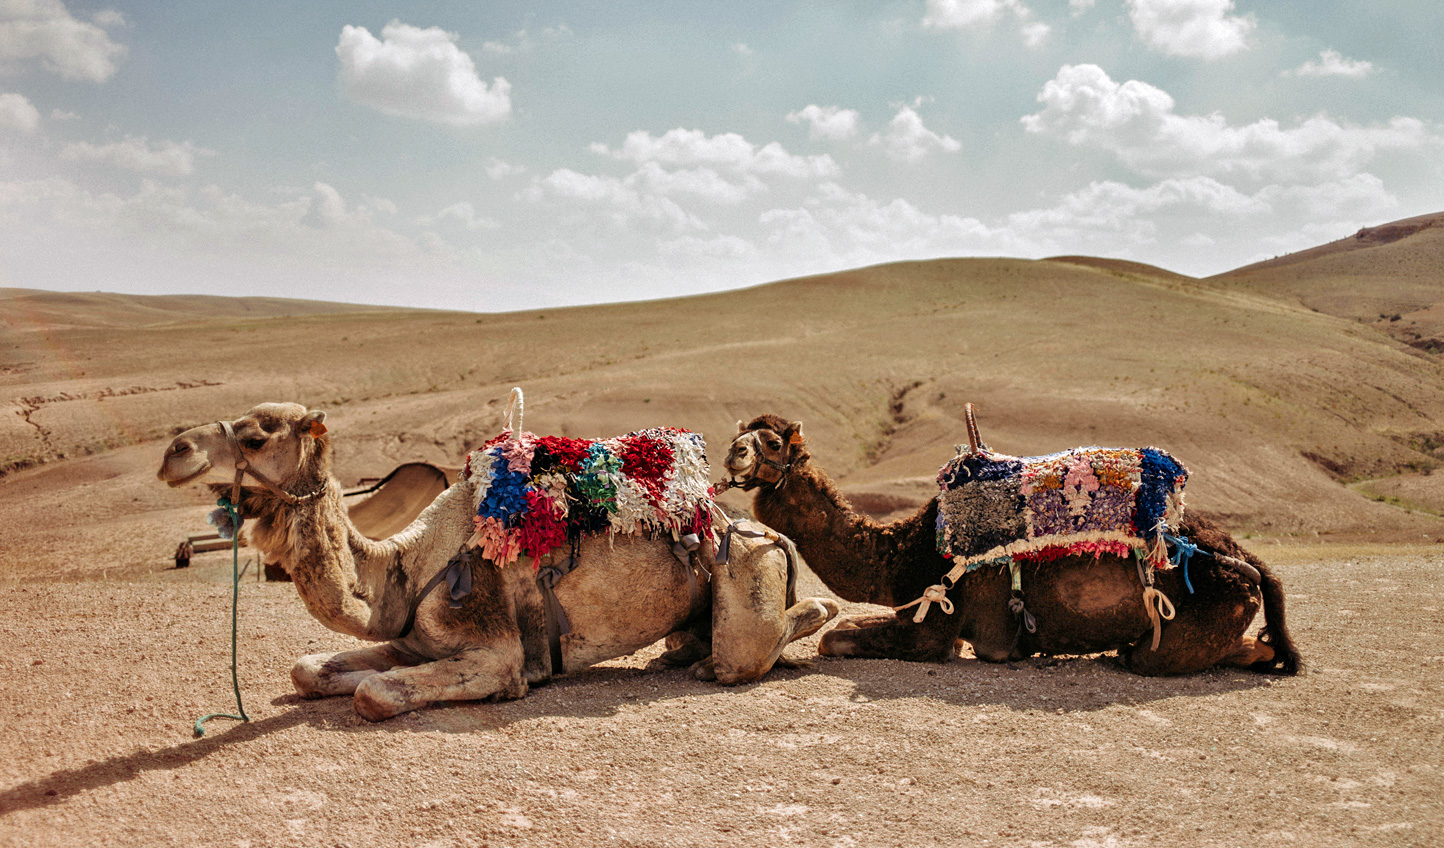 Saddle up and see the Agafay Desert at sunset on a camel ride